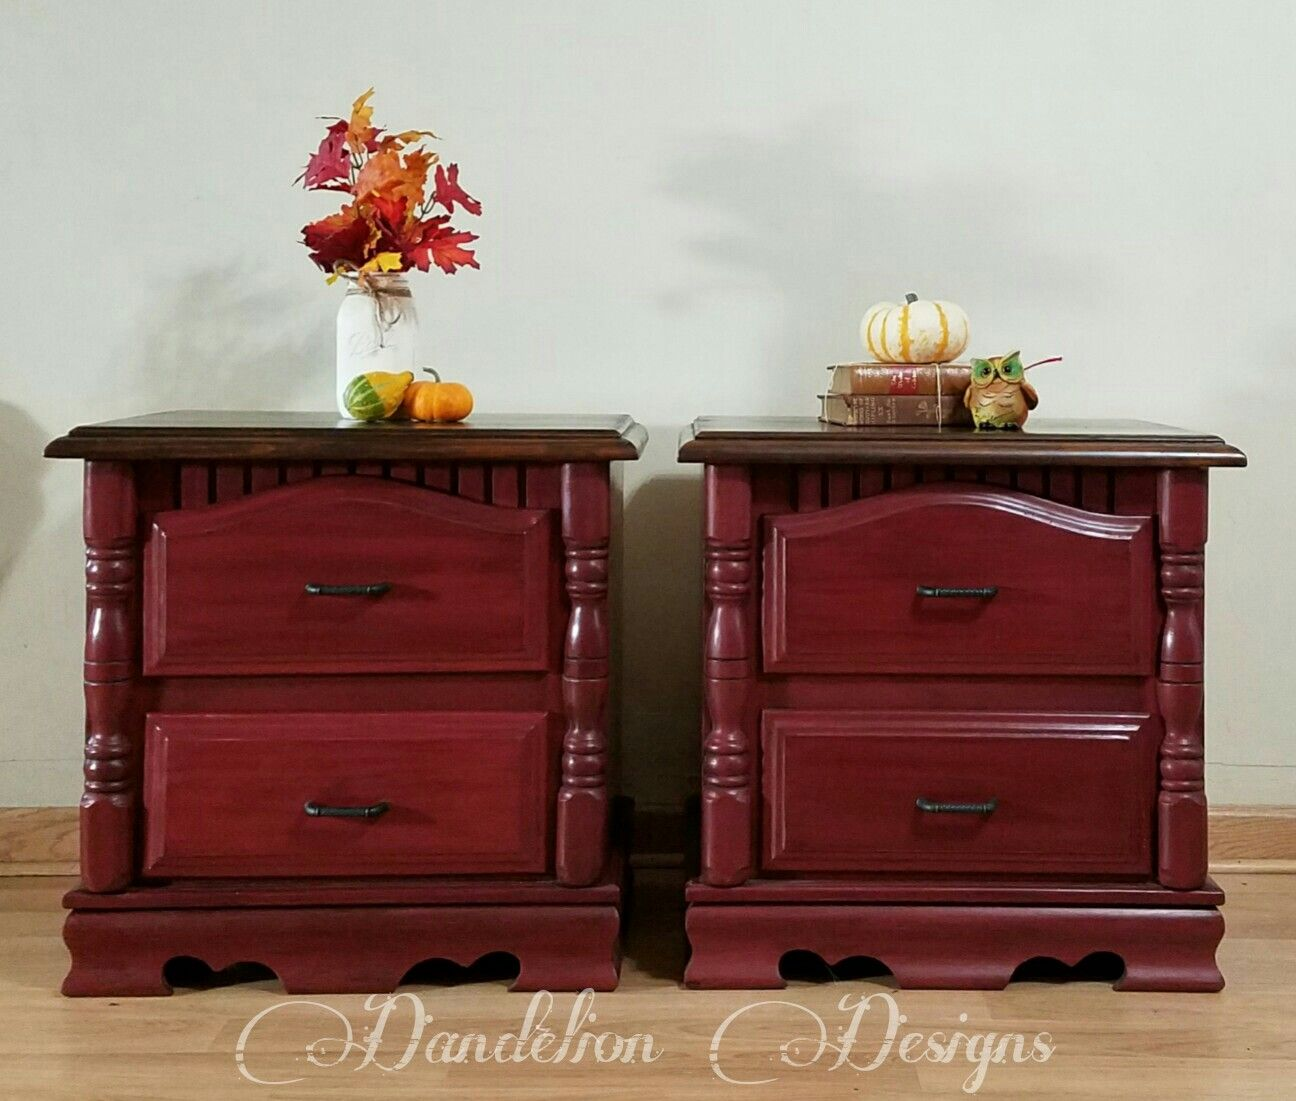 Smoky Pearl Furniture Painting Technique Captiva: Nightstands Painted In Rustoleum Chalked Paint In Crimson